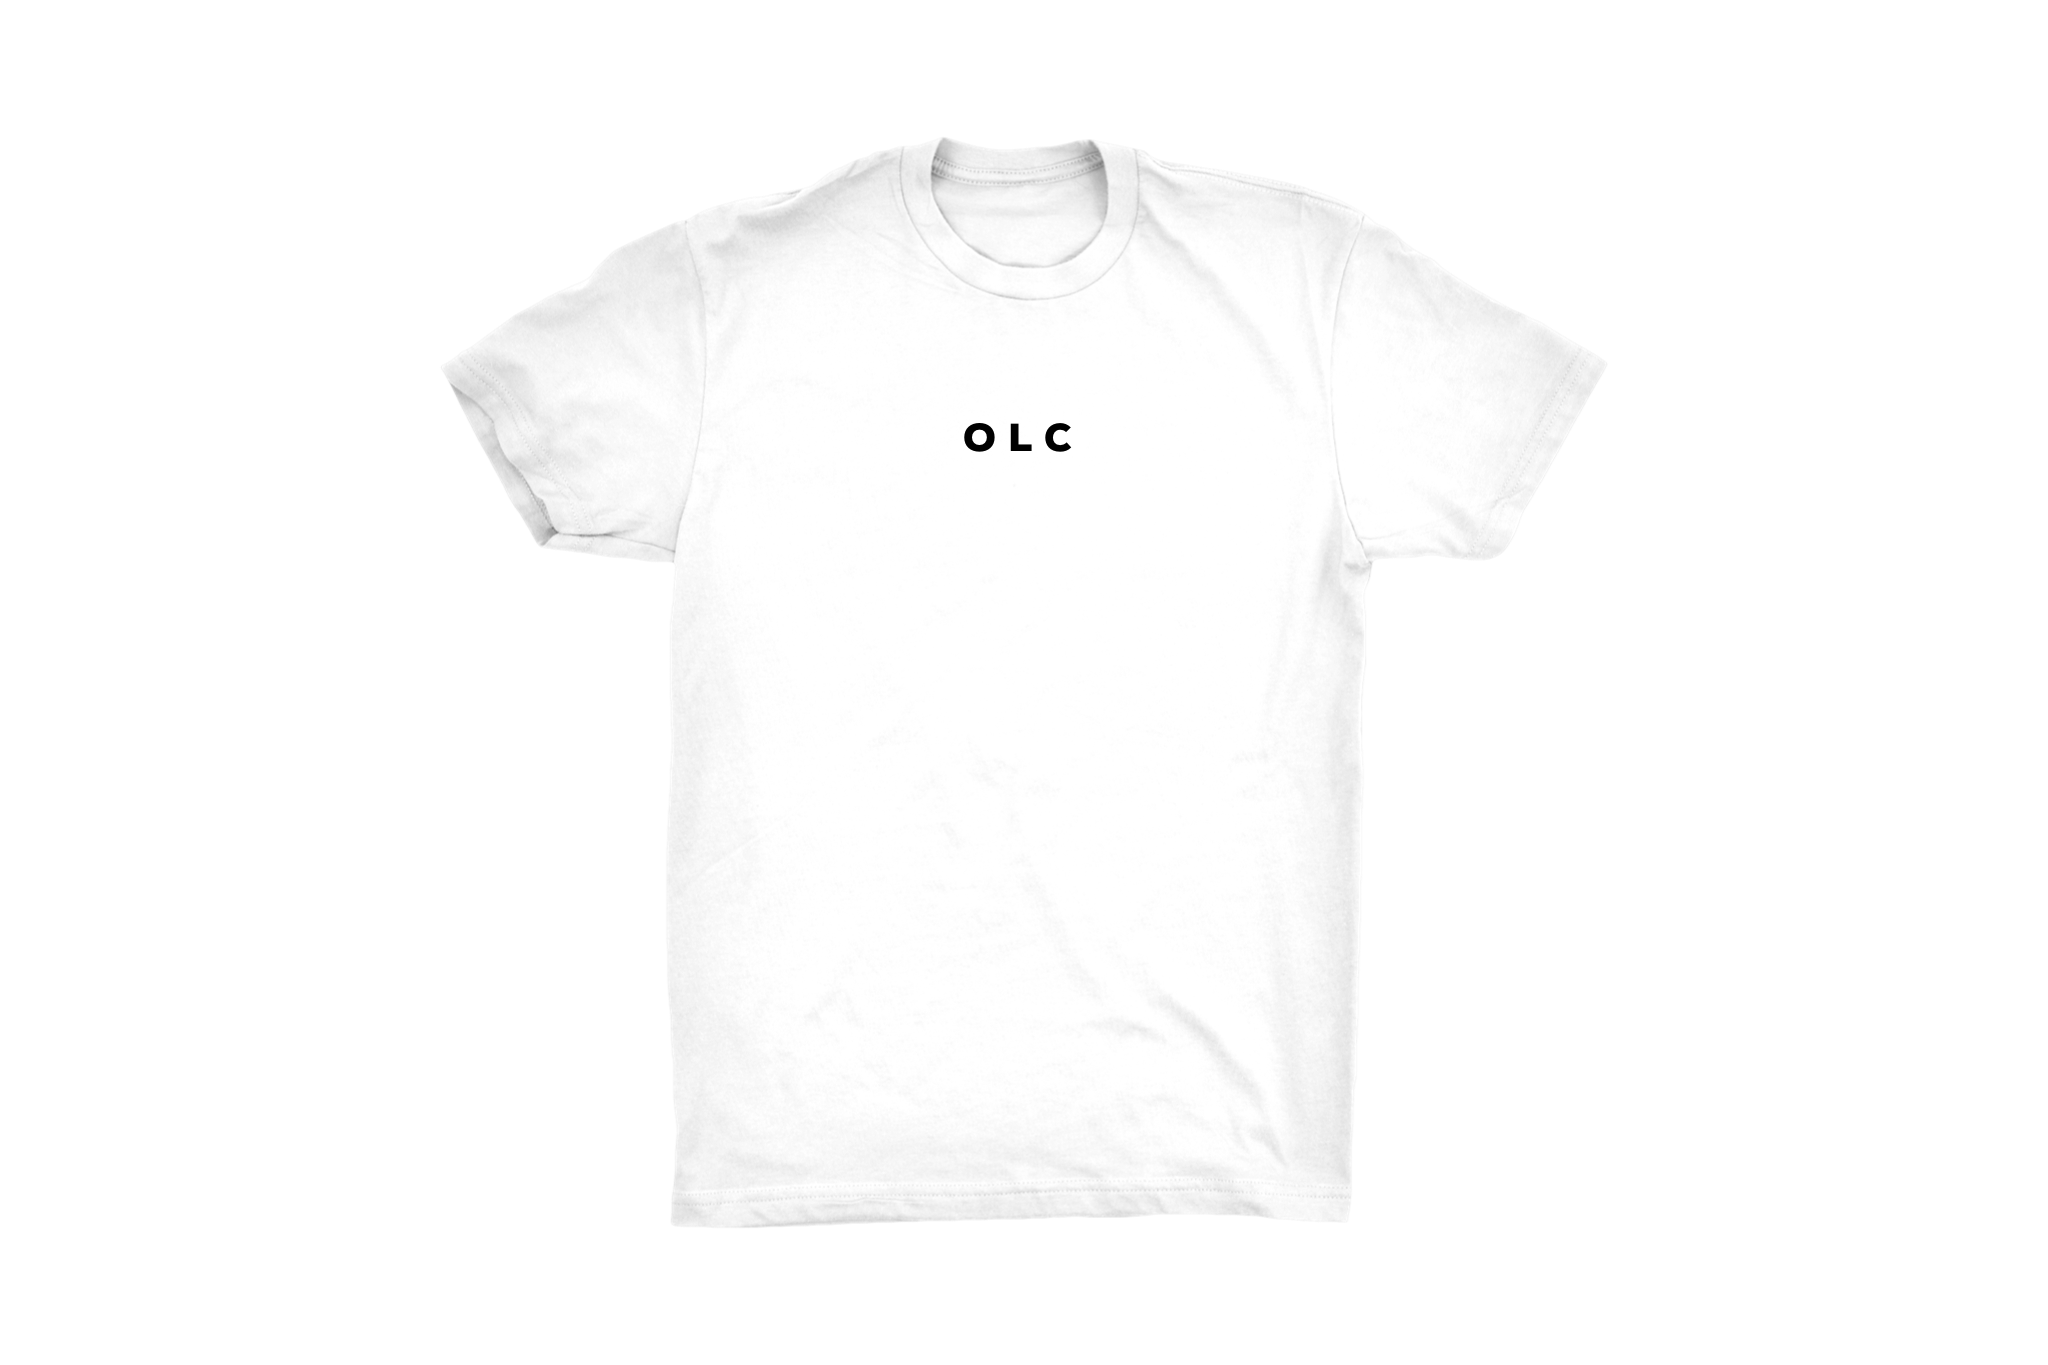 2019 S/SOLC Shirts - More info below